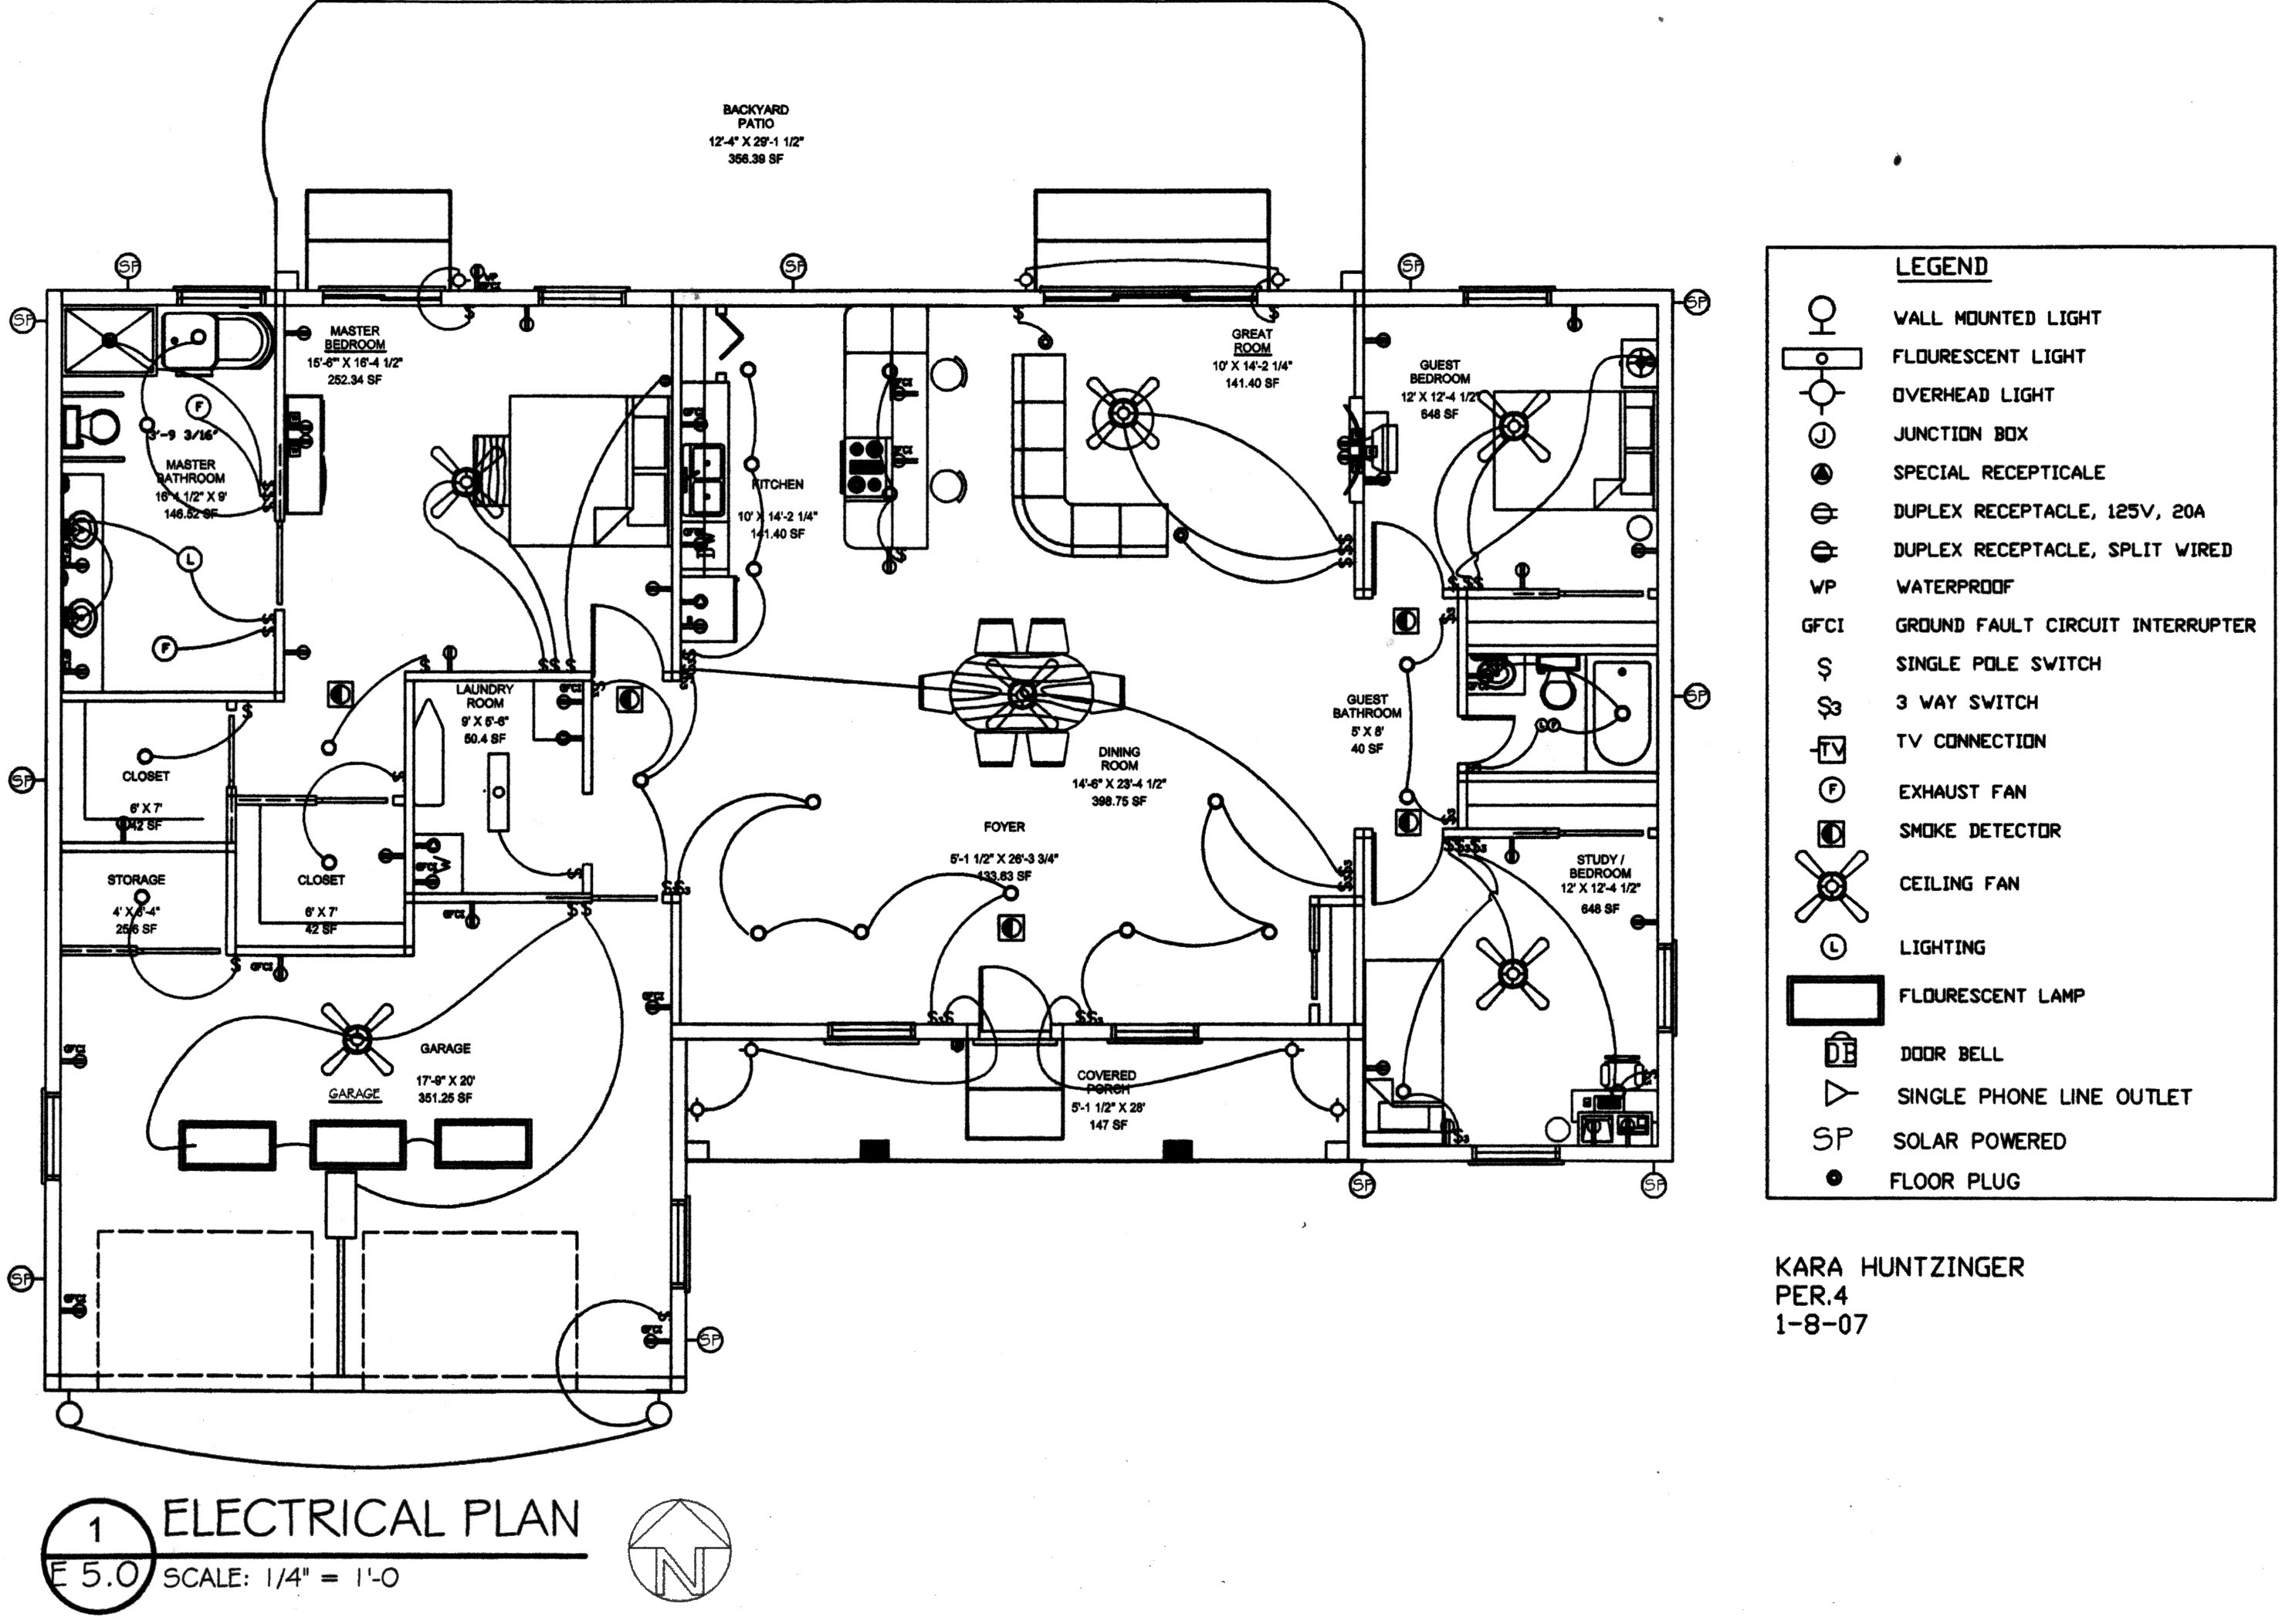 Electric House Wiring Diagram My Electrical Room Plan Internetunblock Of